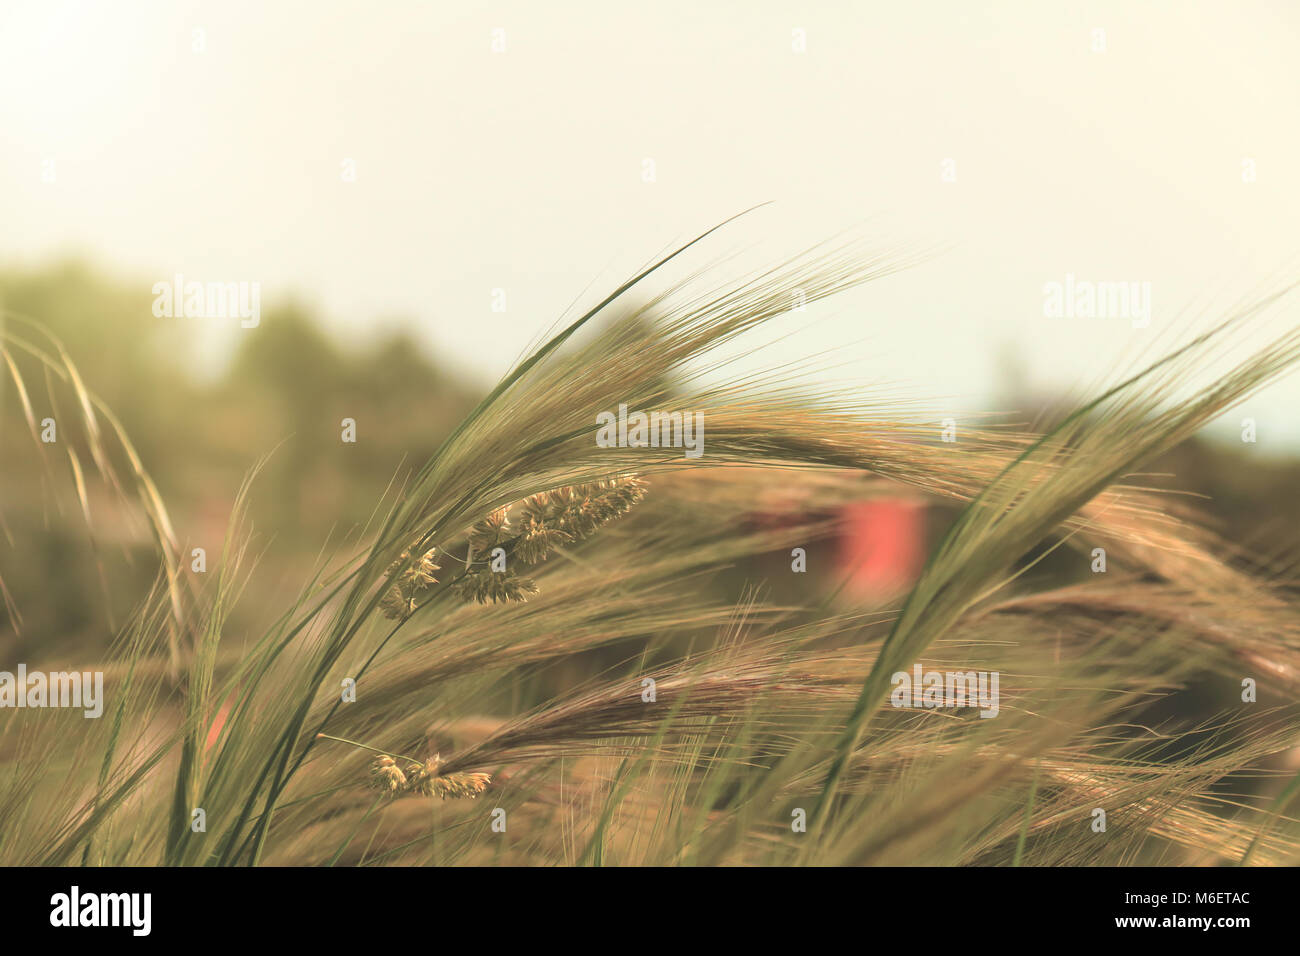 Landscape with wild plants - Stock Image